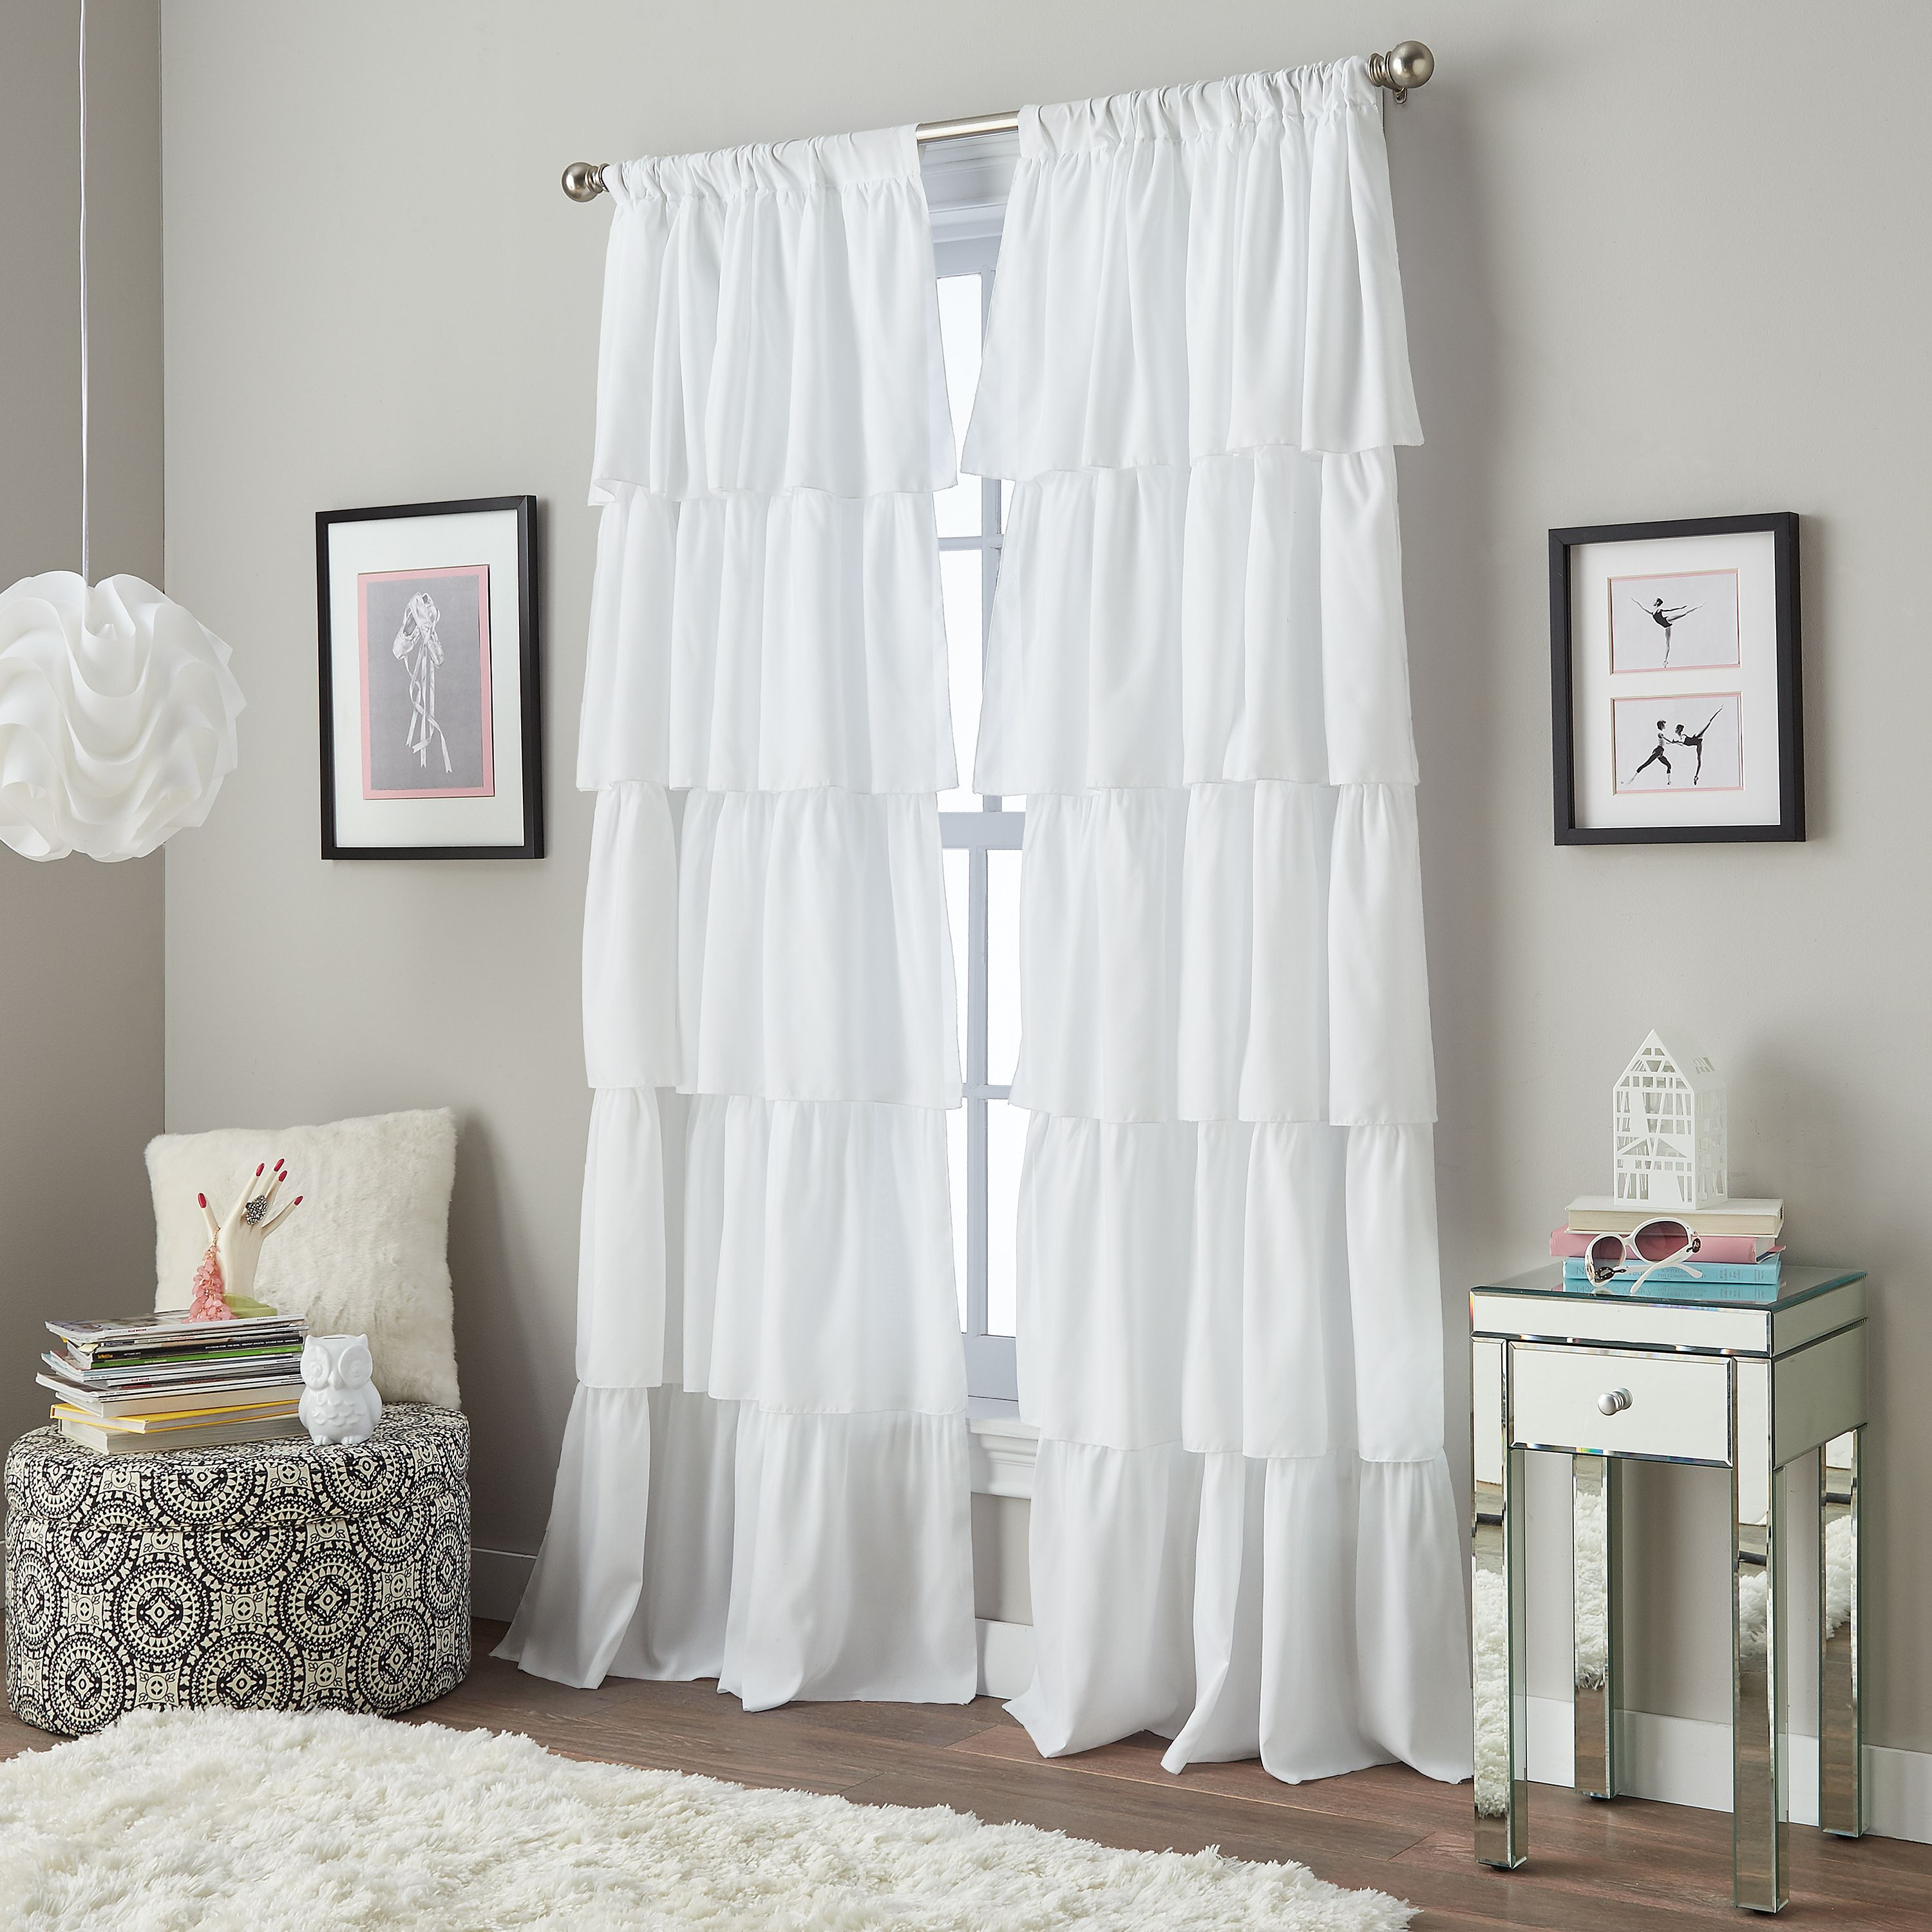 Your Zone Ruffle S Bedroom Curtain